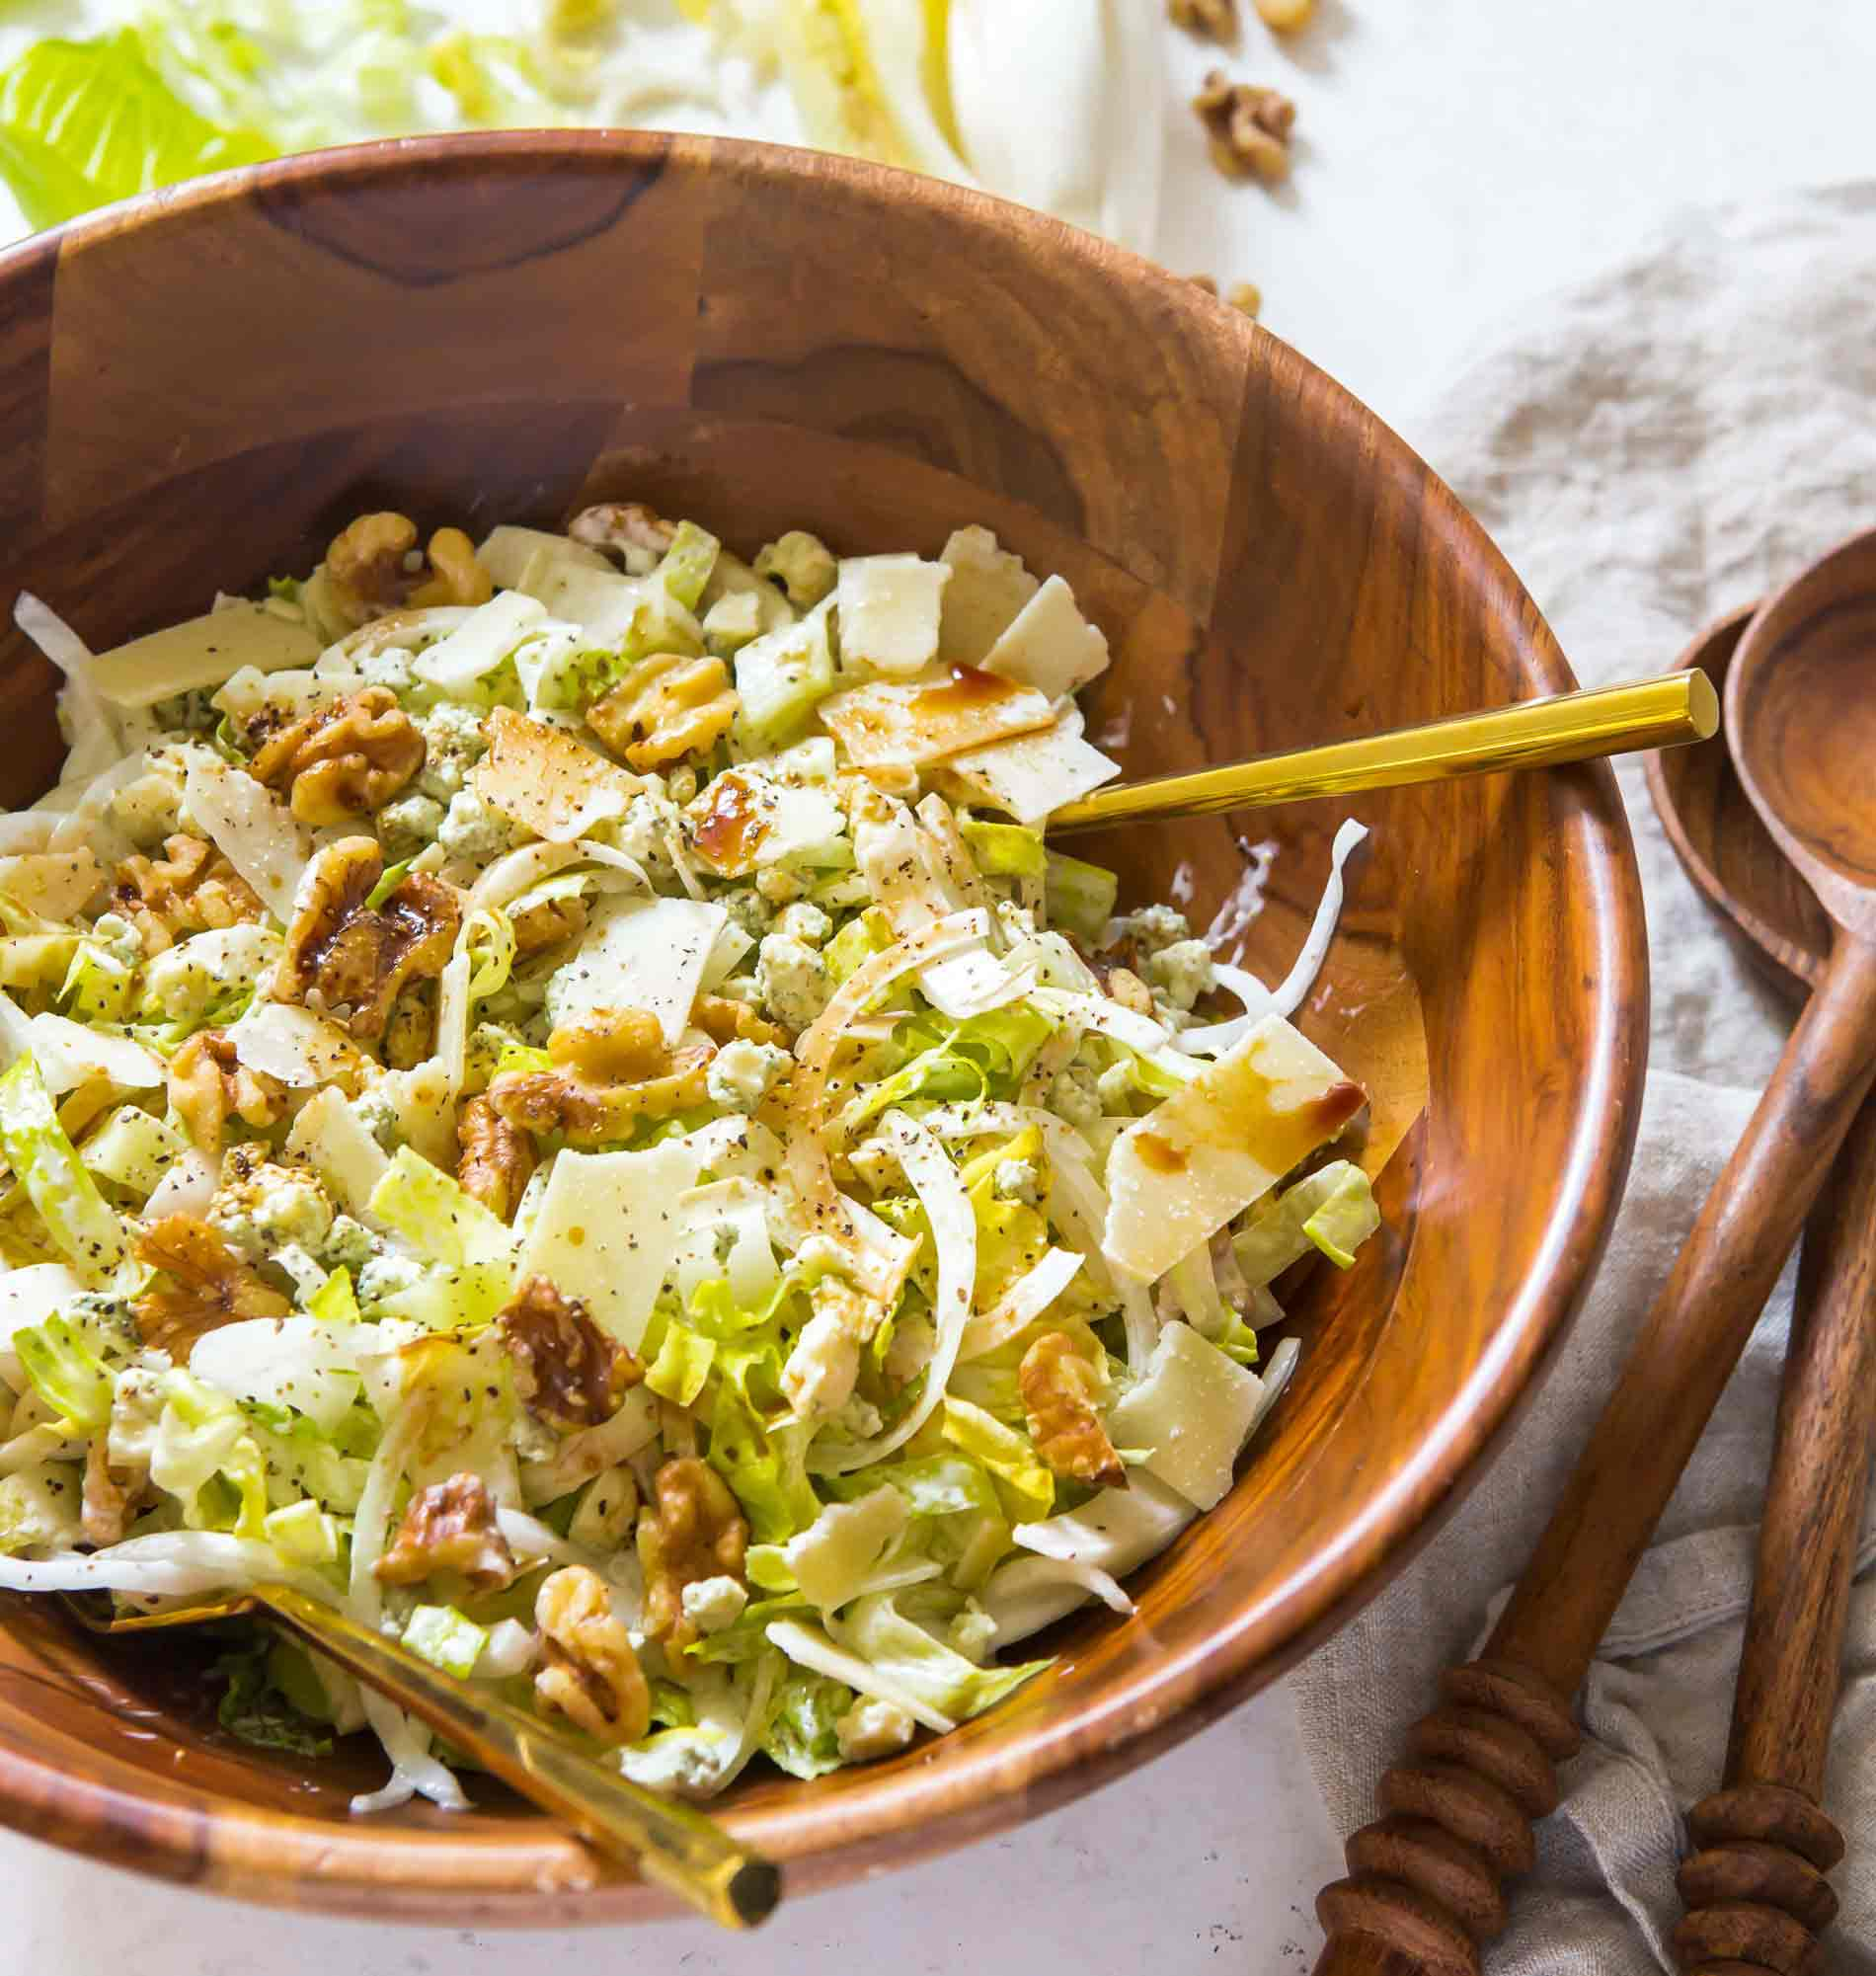 Inspired by my trip to Southern France, this incredibly refreshing chopped endive and romaine salad will be one of your new favorite salads to make! You'll love all the flavors and textures of this salad! #endive #romaine #choppedsalad #saladrecipe #refreshingsalad